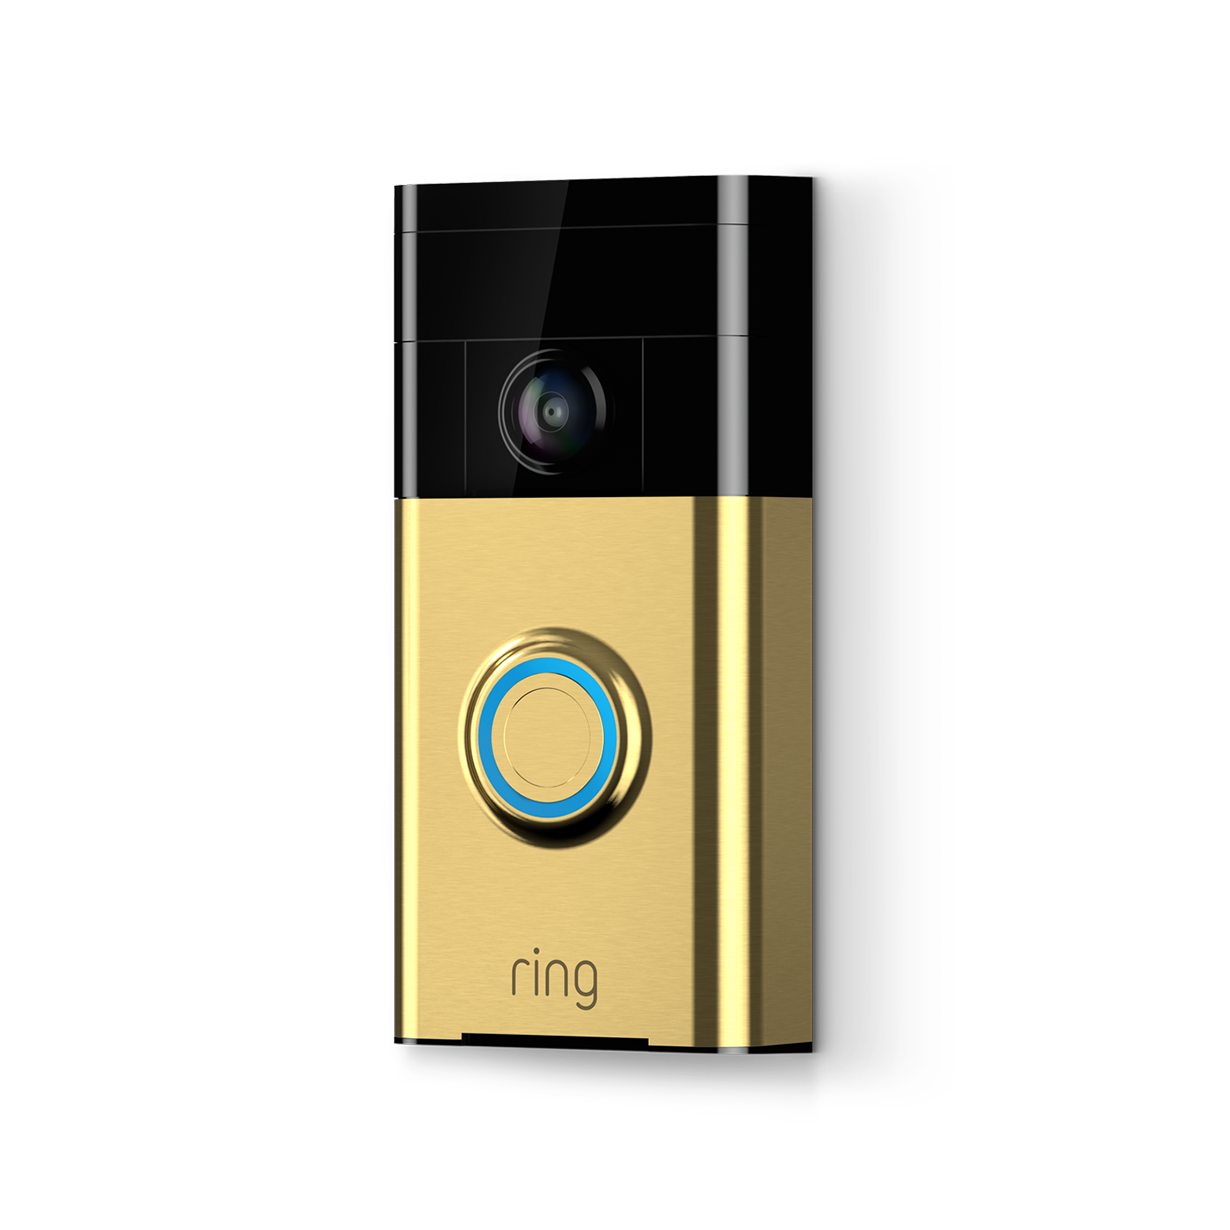 See Hear And Speak To Visitors With Ring Video Doorbell